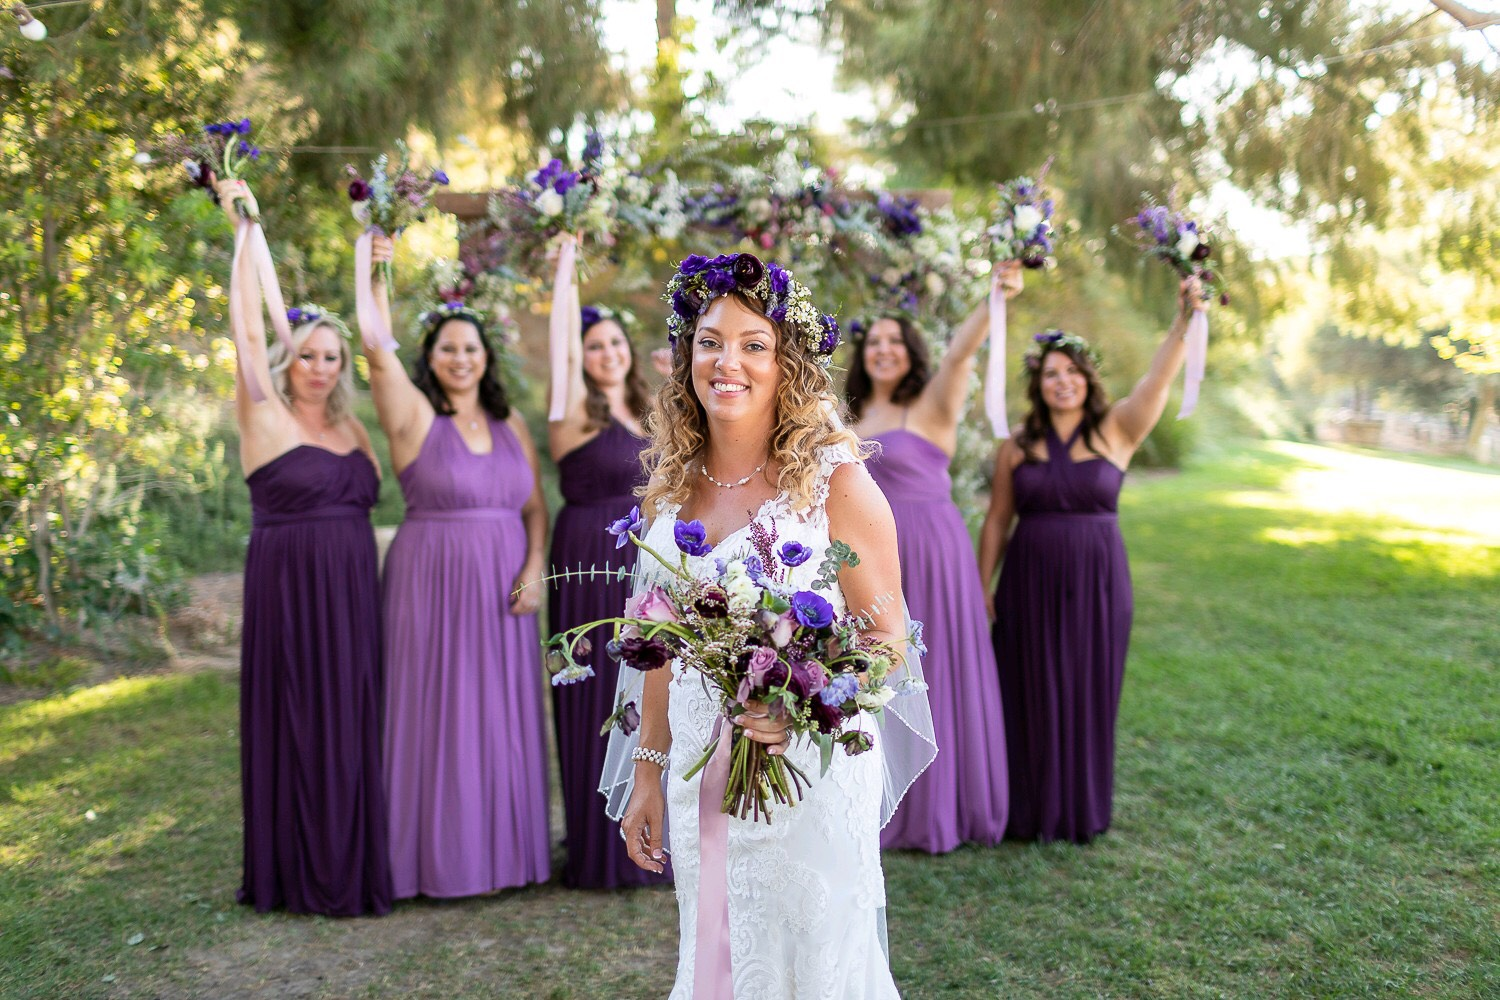 Bride + Bridesmaids in Hues of Purple.jpg